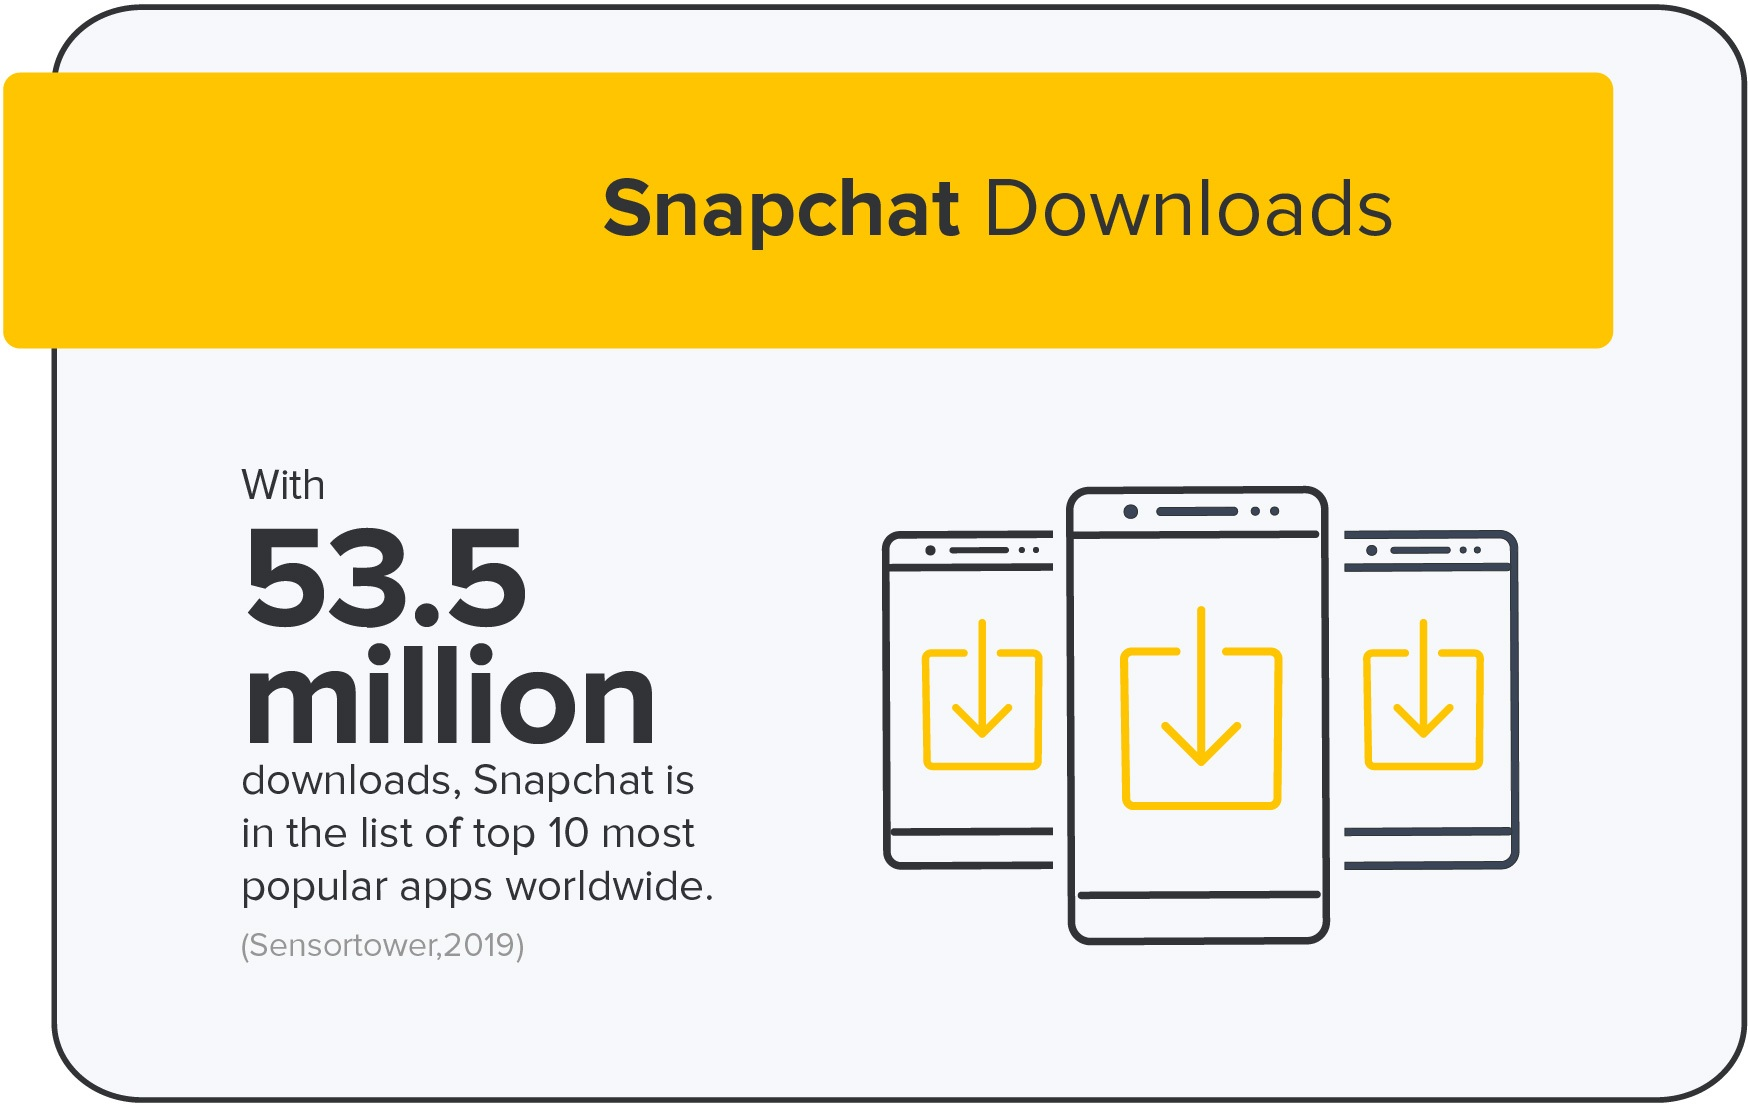 how many snapchat downloads